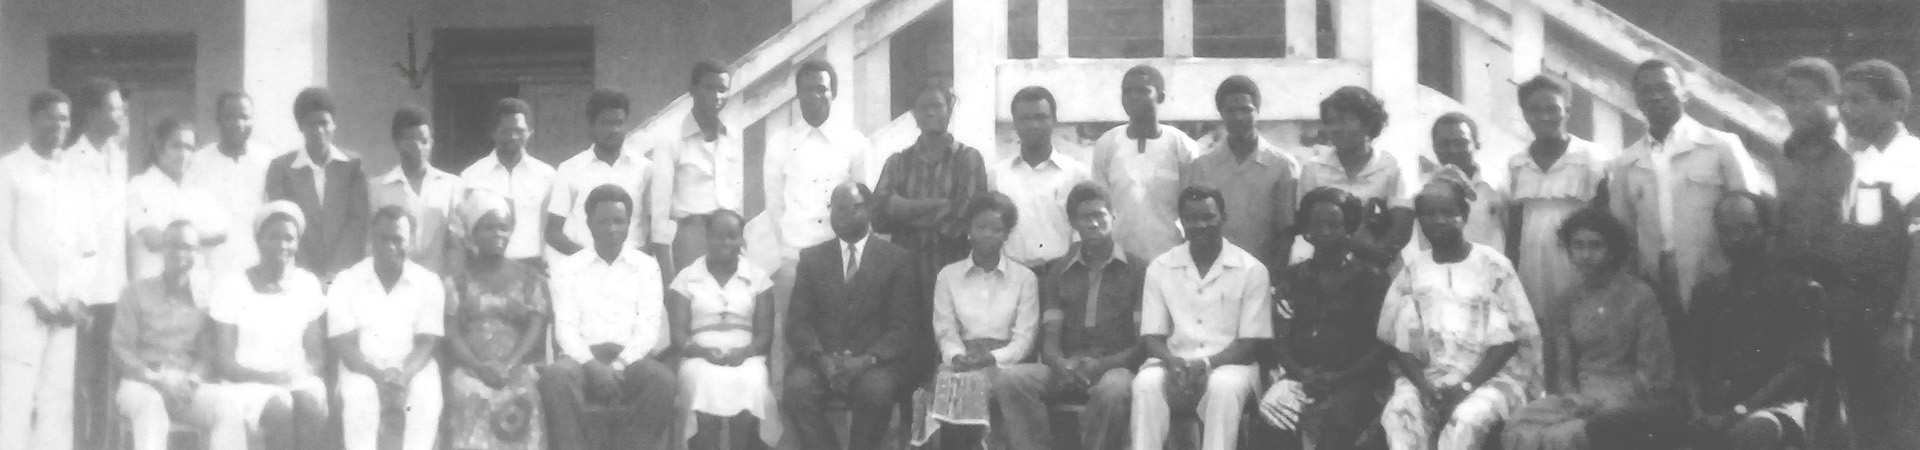 1978 academic staff group picture